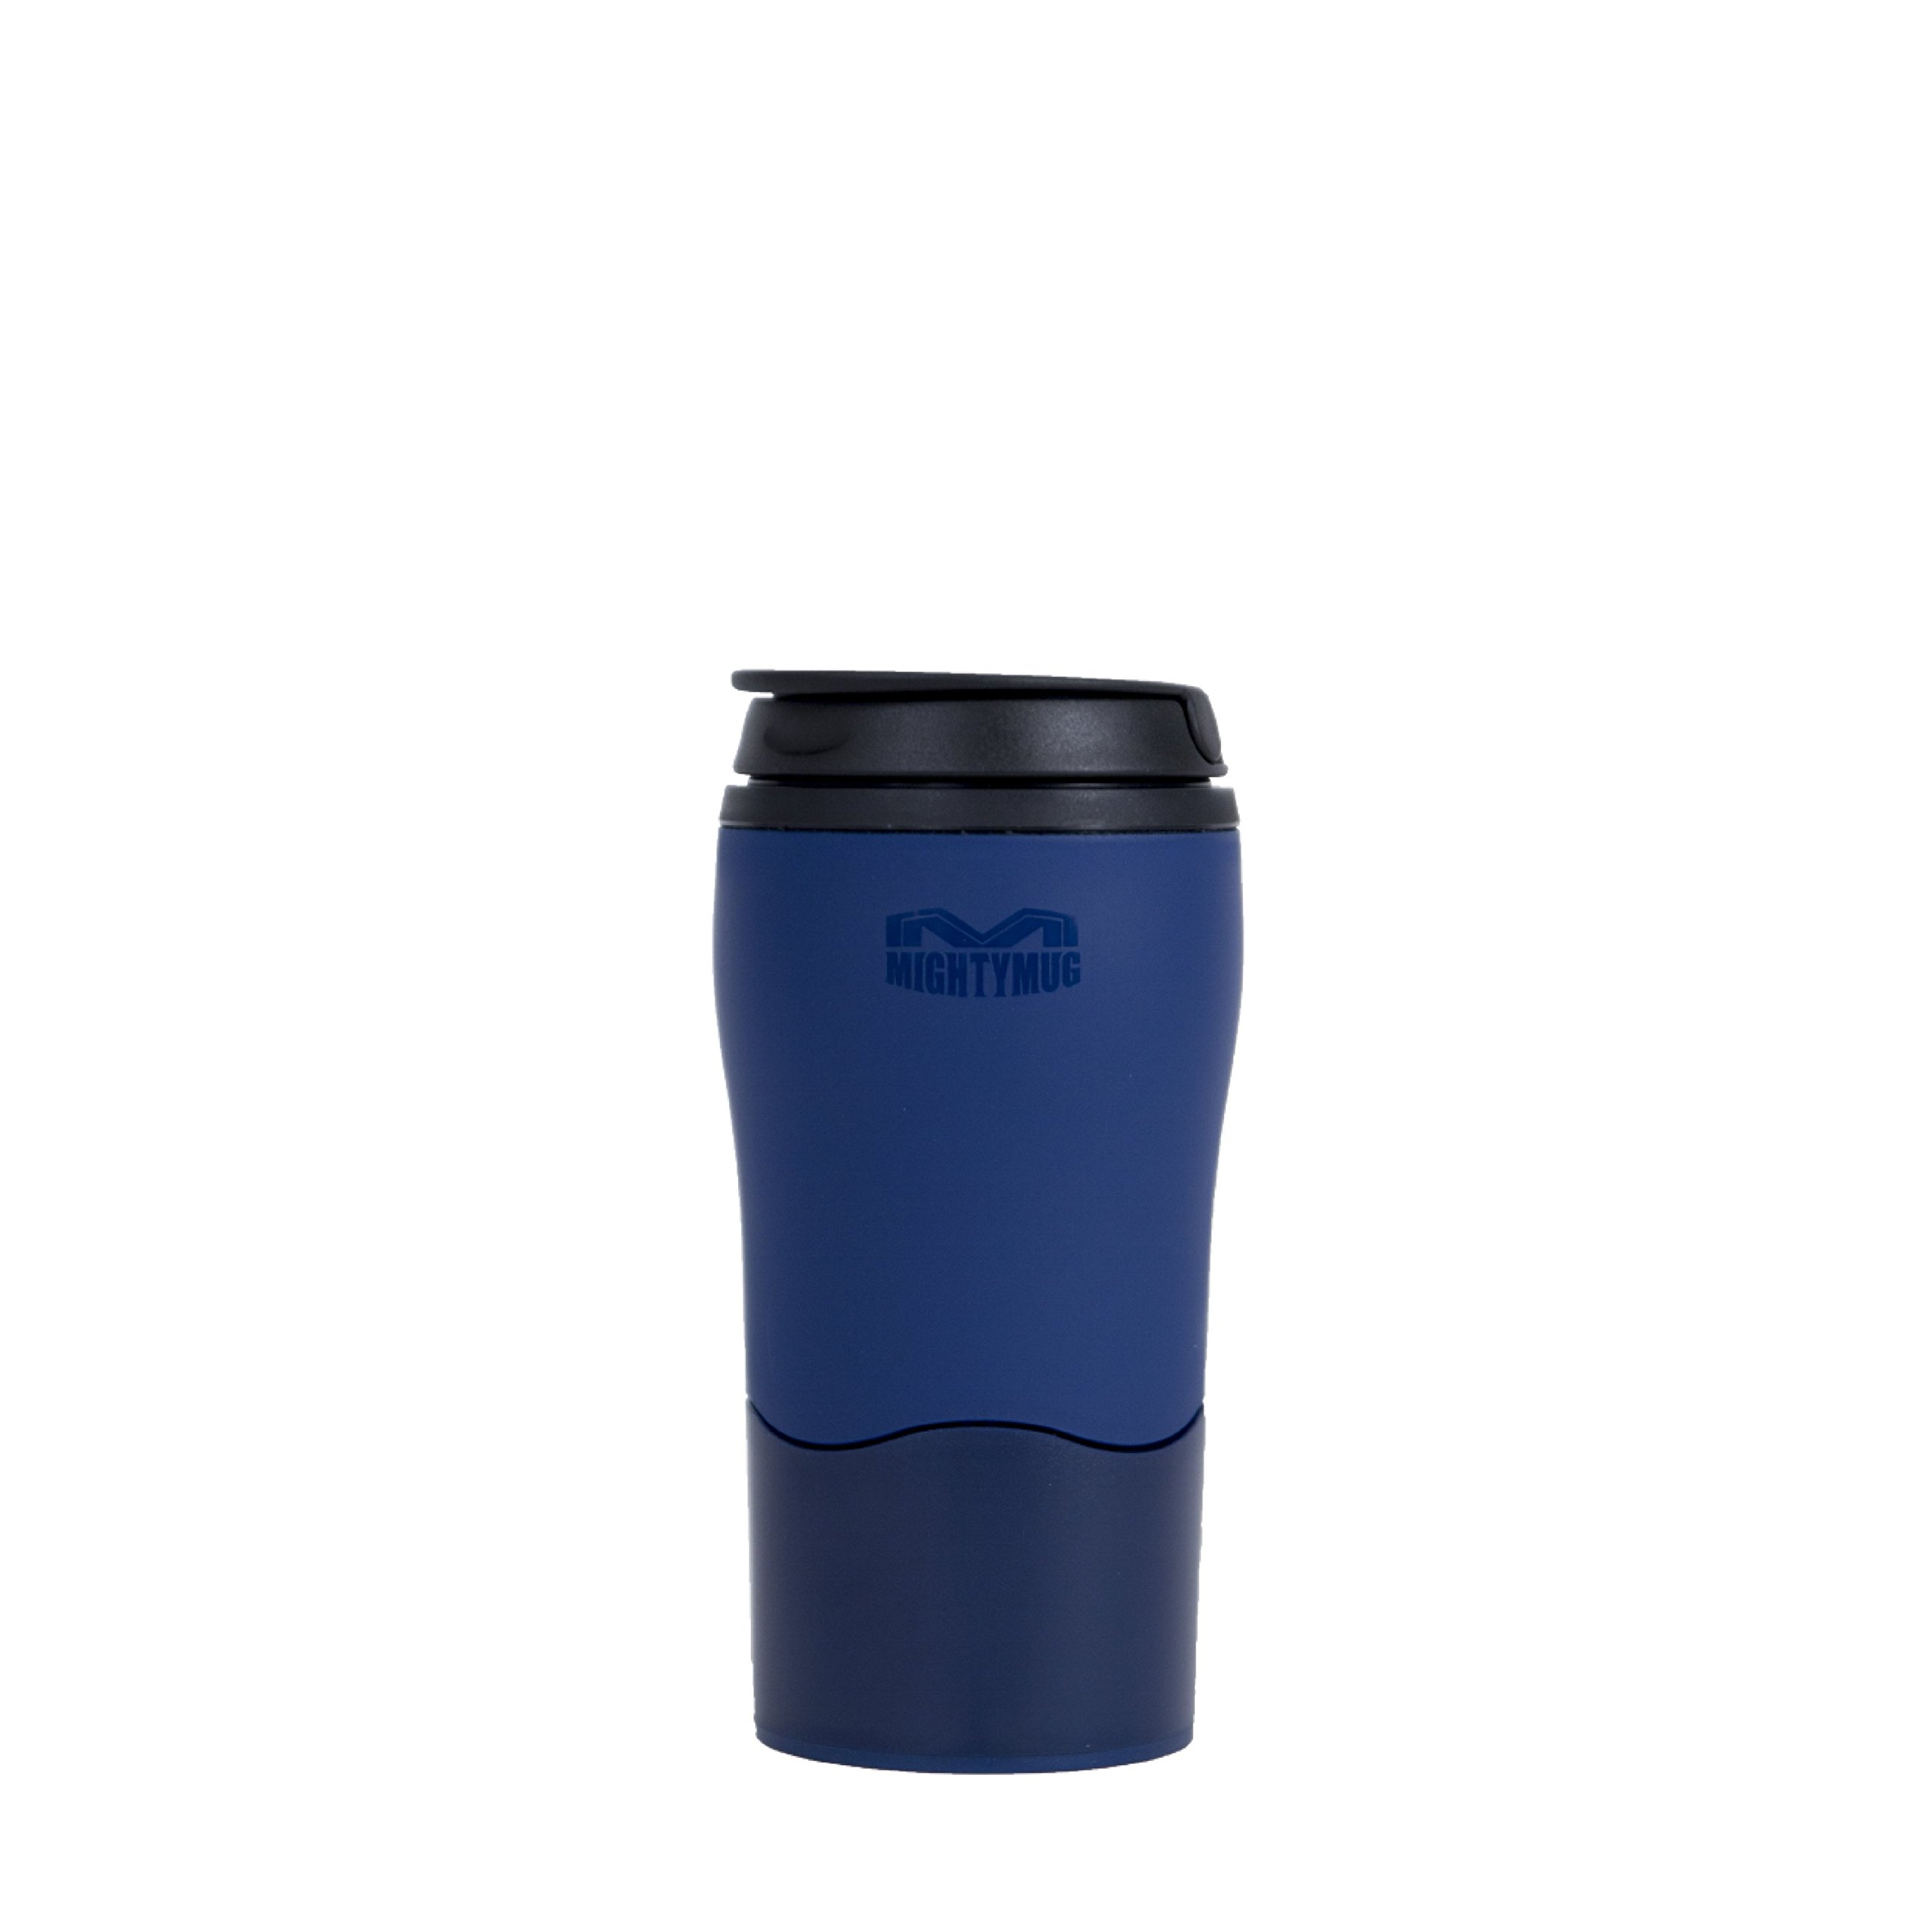 Mighty Mug 1976 Solo 12oz Travel Mug Single Serve, Blue